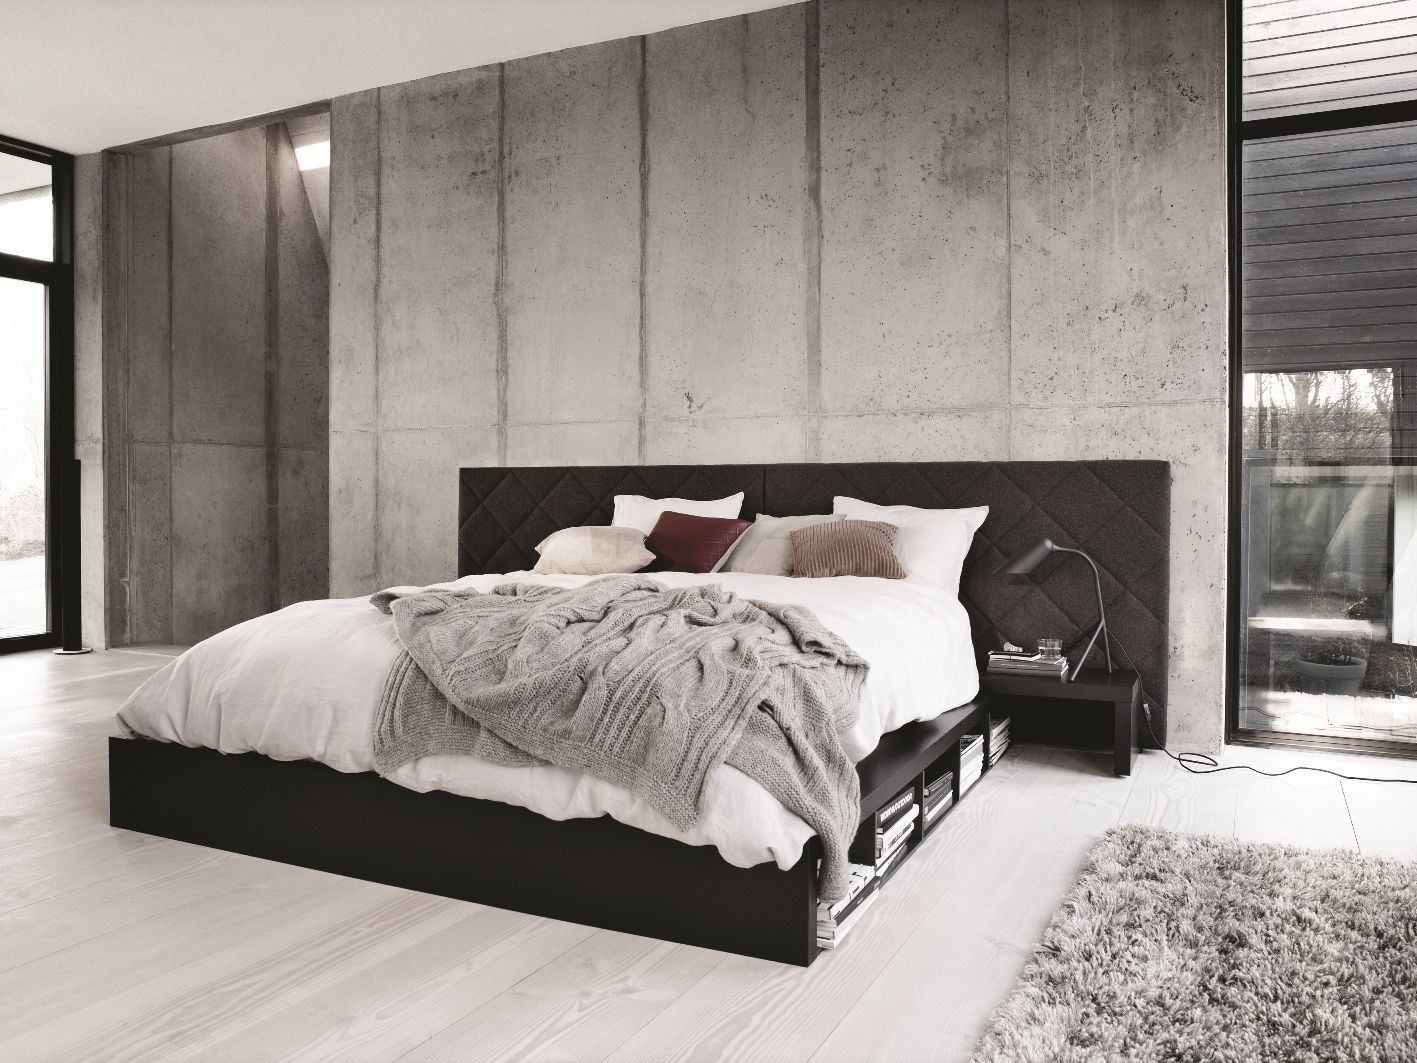 Oak Veneer Bedroom Furniture Boconcept Bed Felt And Black Stained Oak Veneer Sleeping